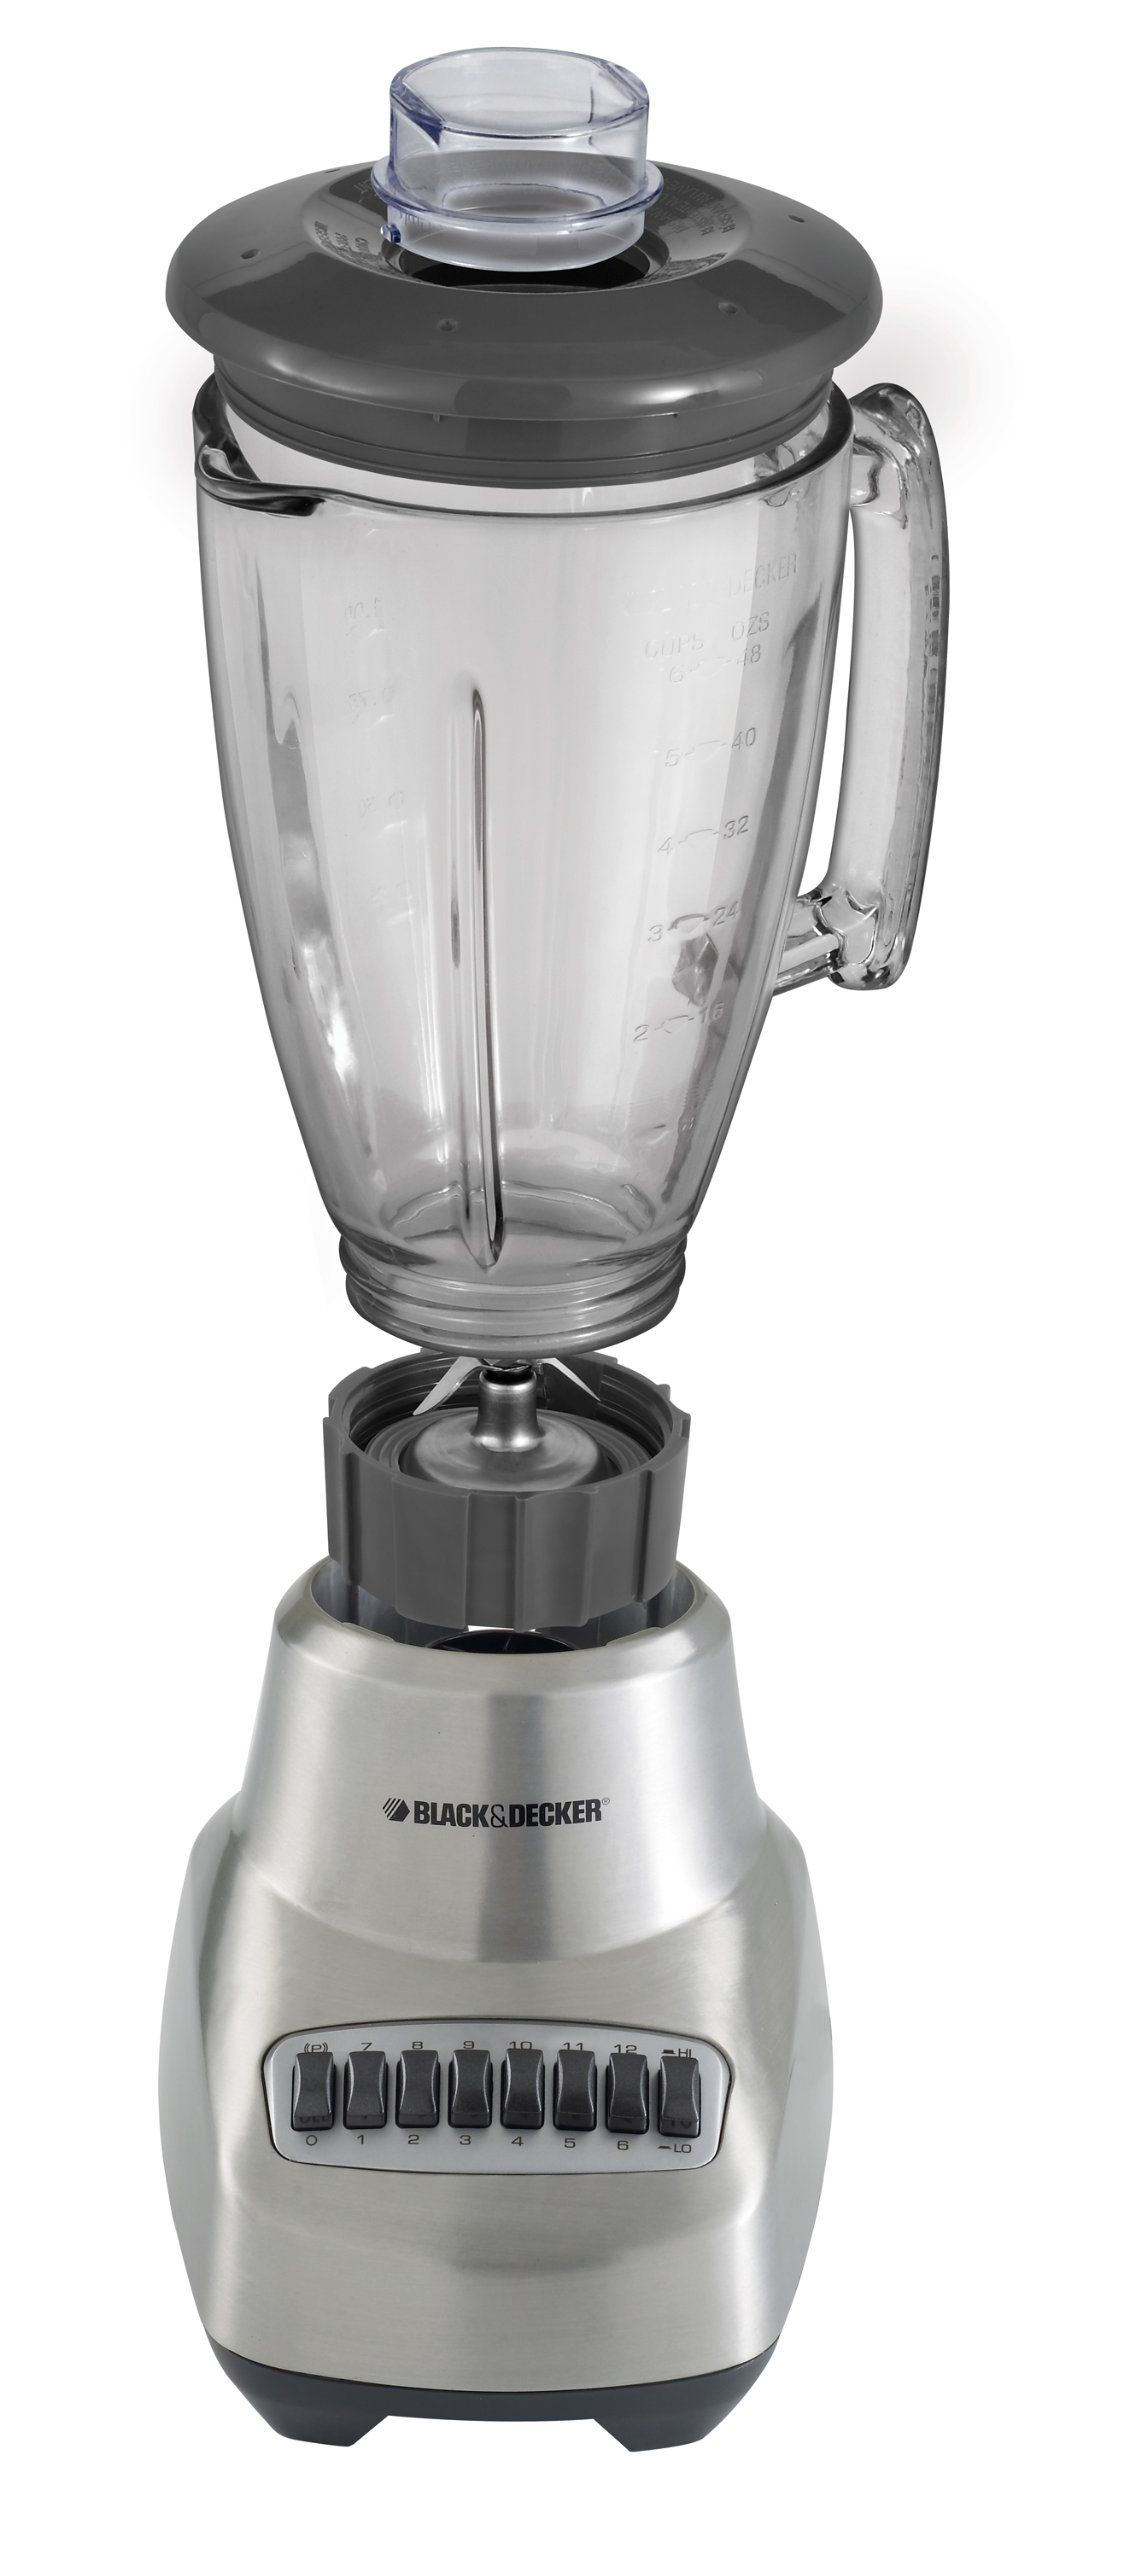 Black Decker Bl3500s Countertop Blender With 6cup Glass Jar 12